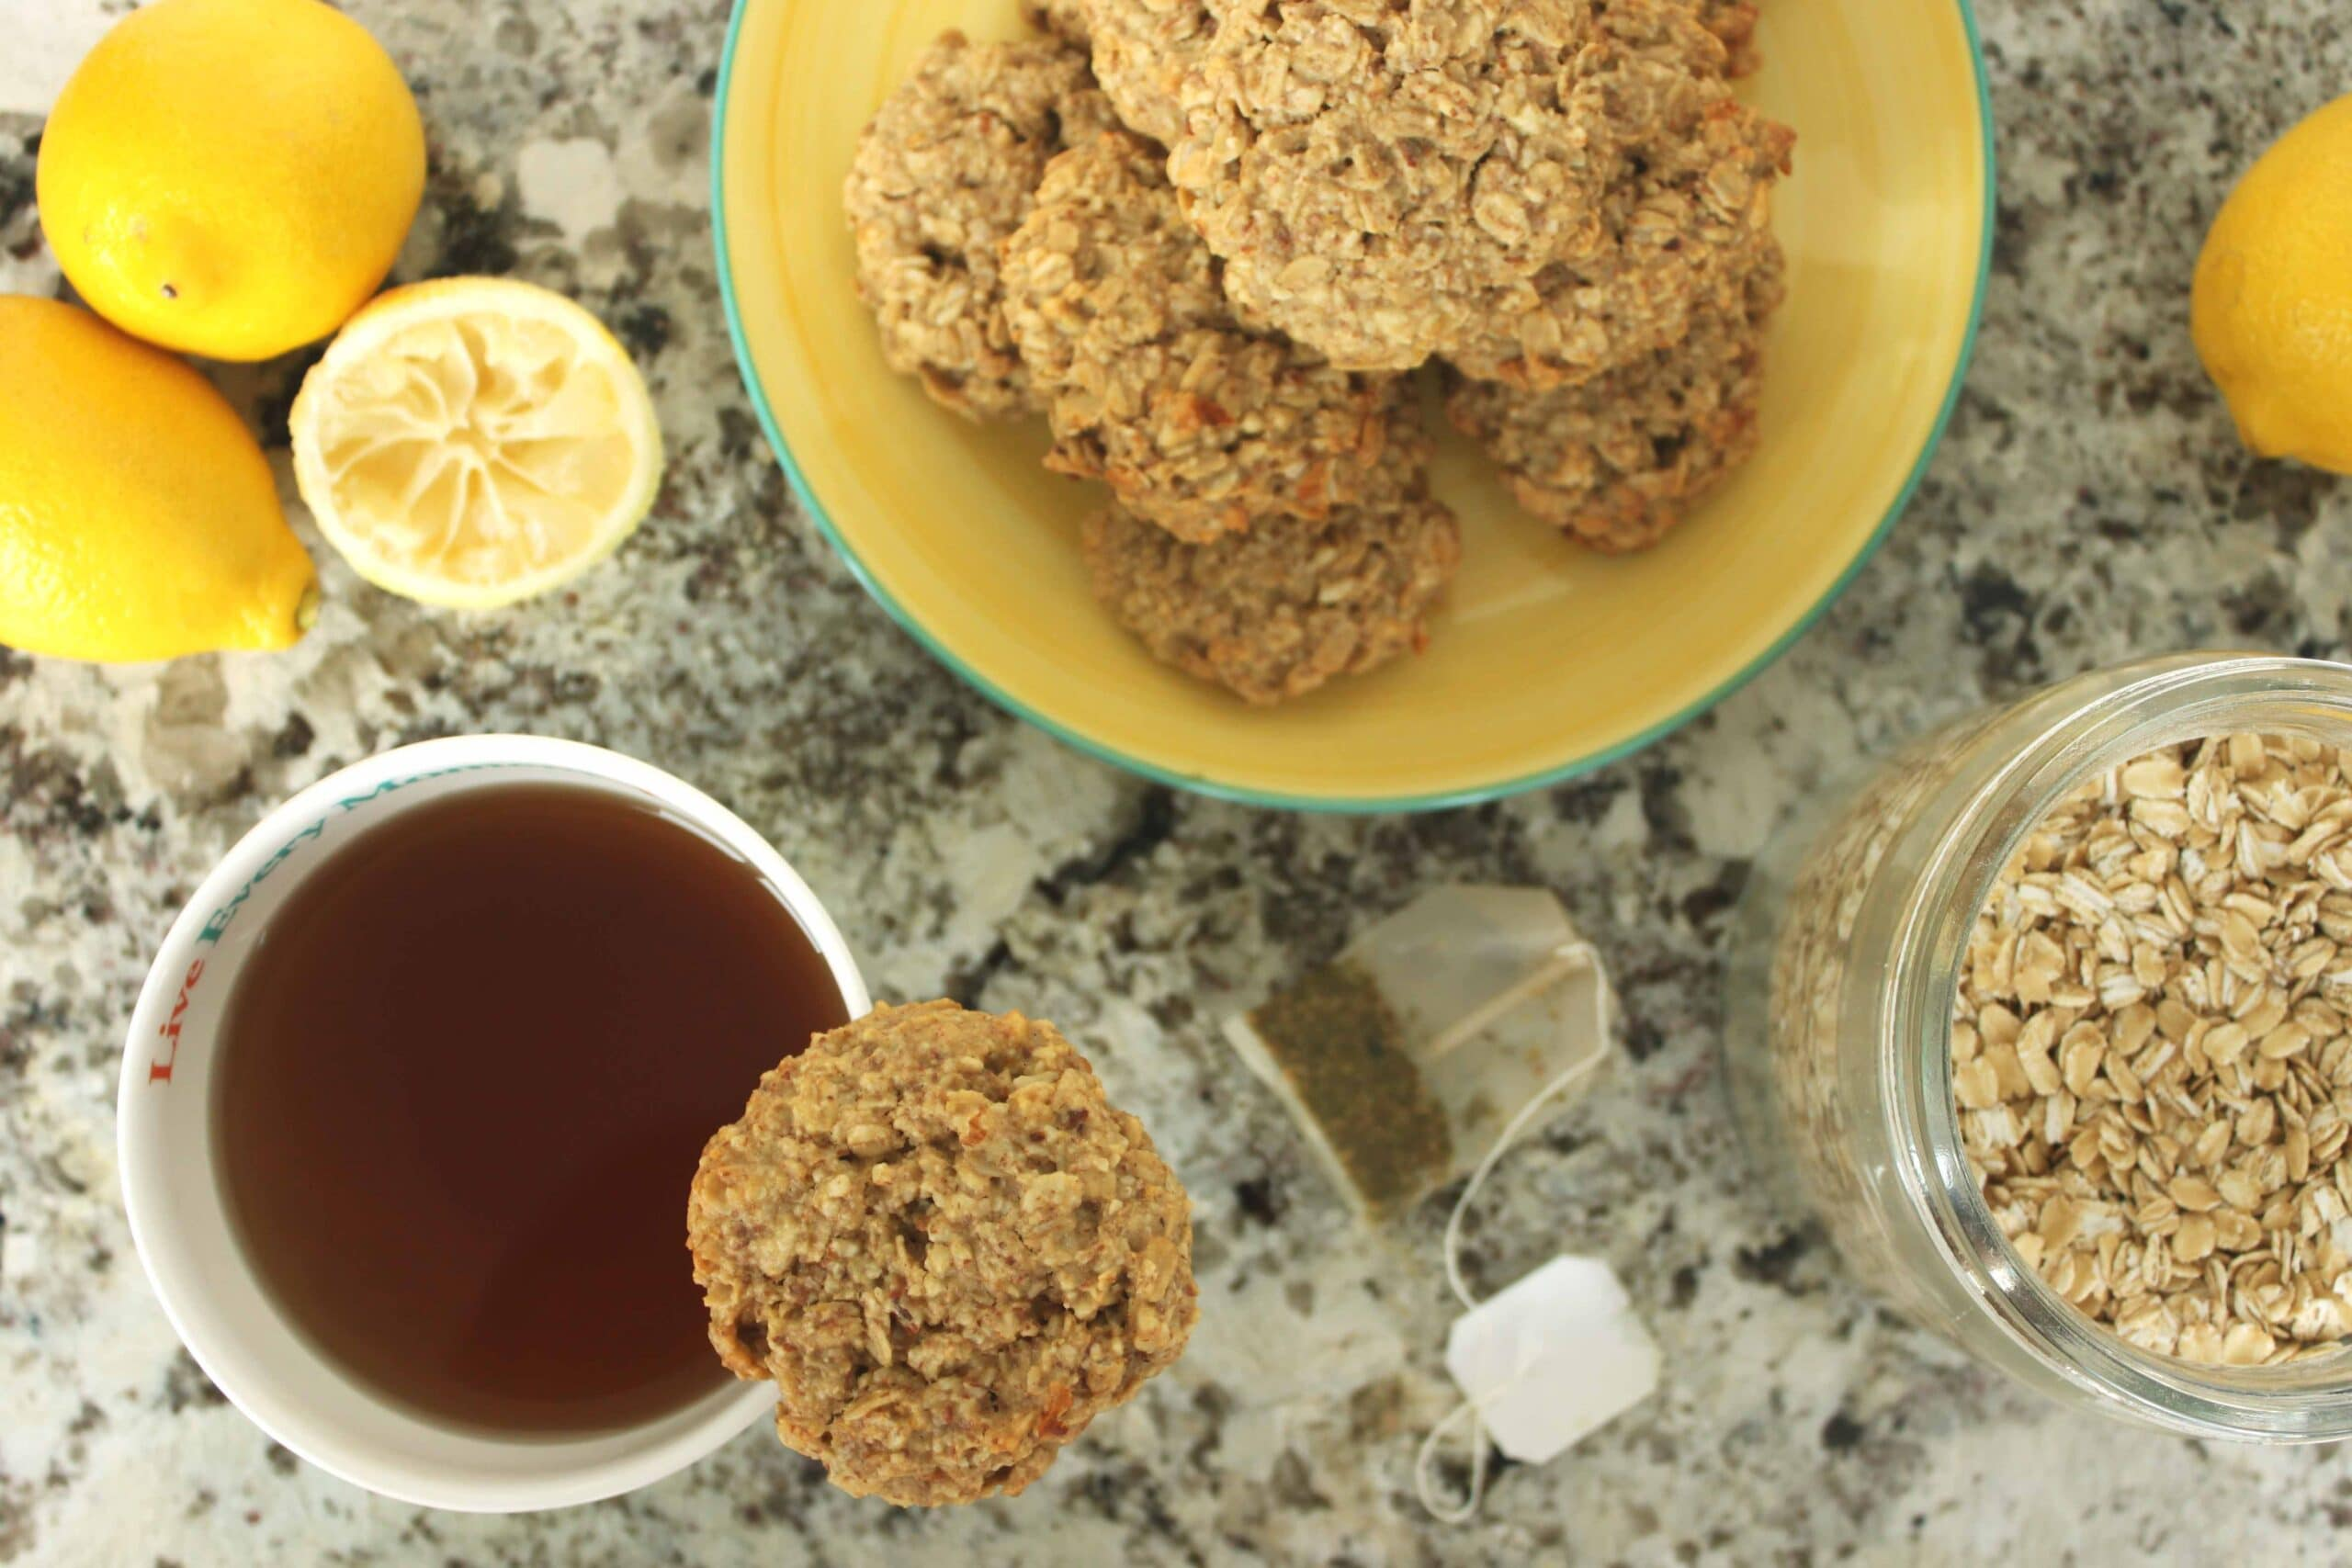 The Morning Show - Lemon Oatmeal Cookies with @jesselwellness #cookies #breakfast